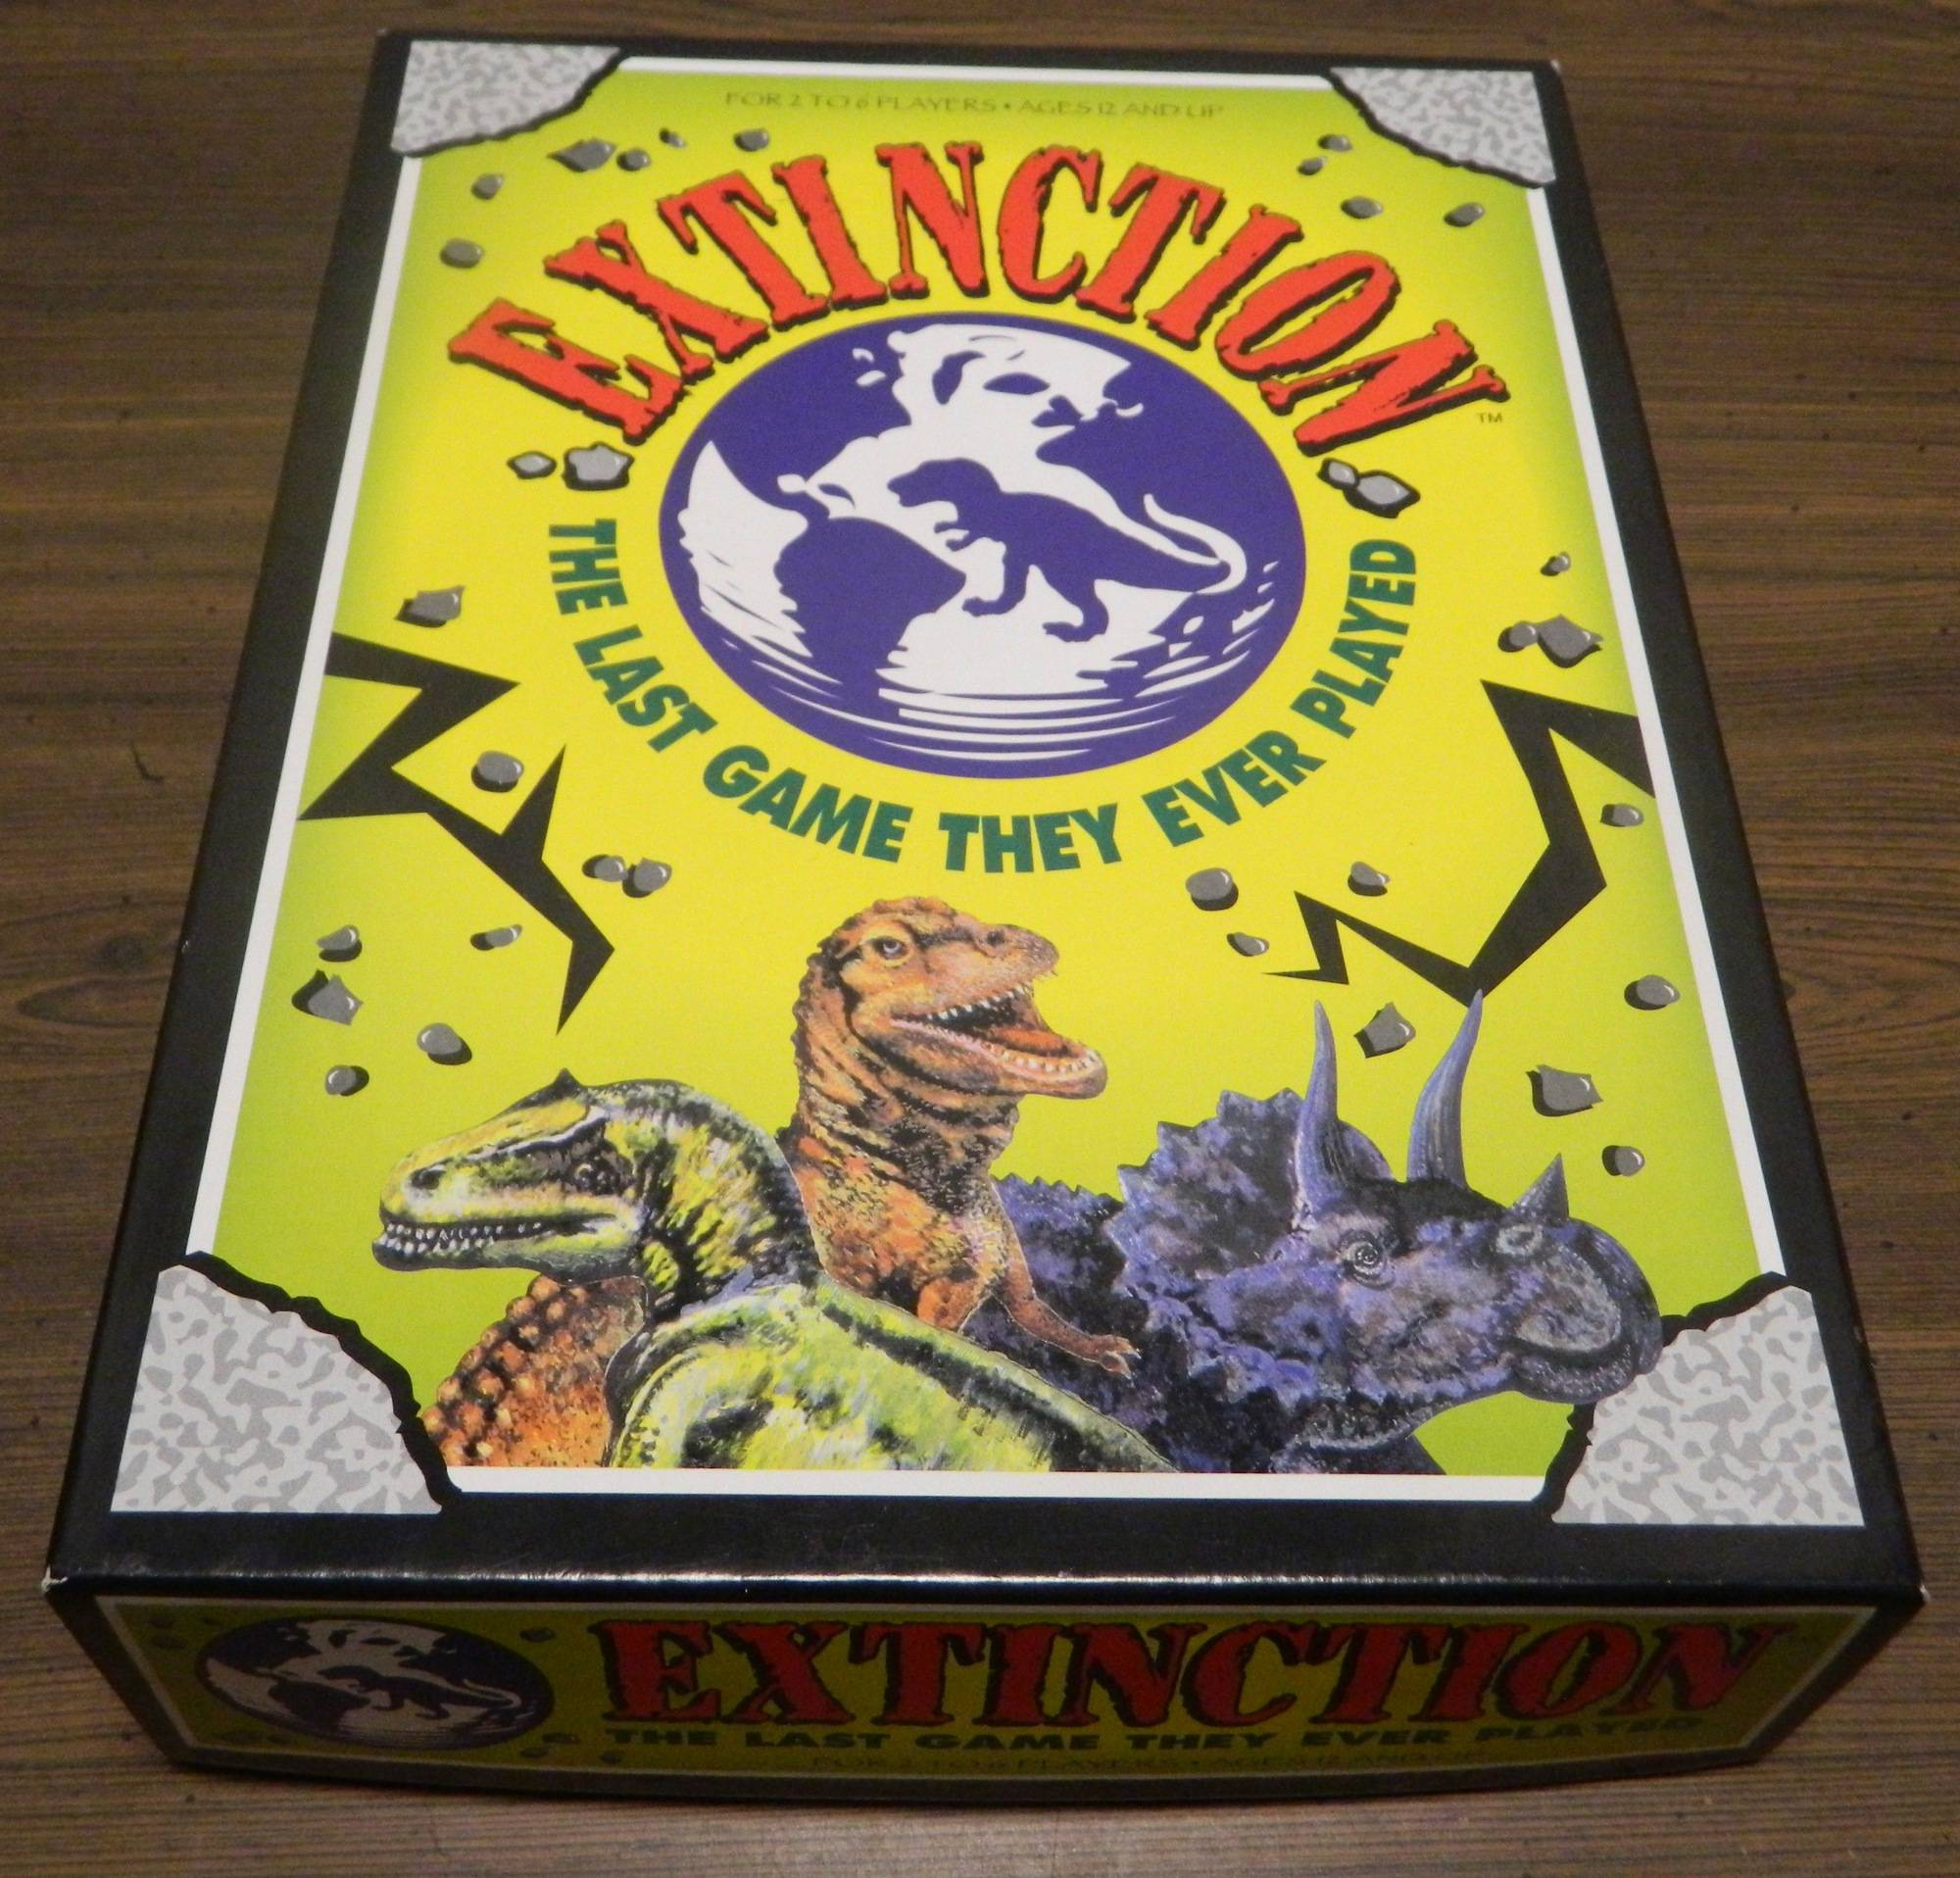 Box for Extinction